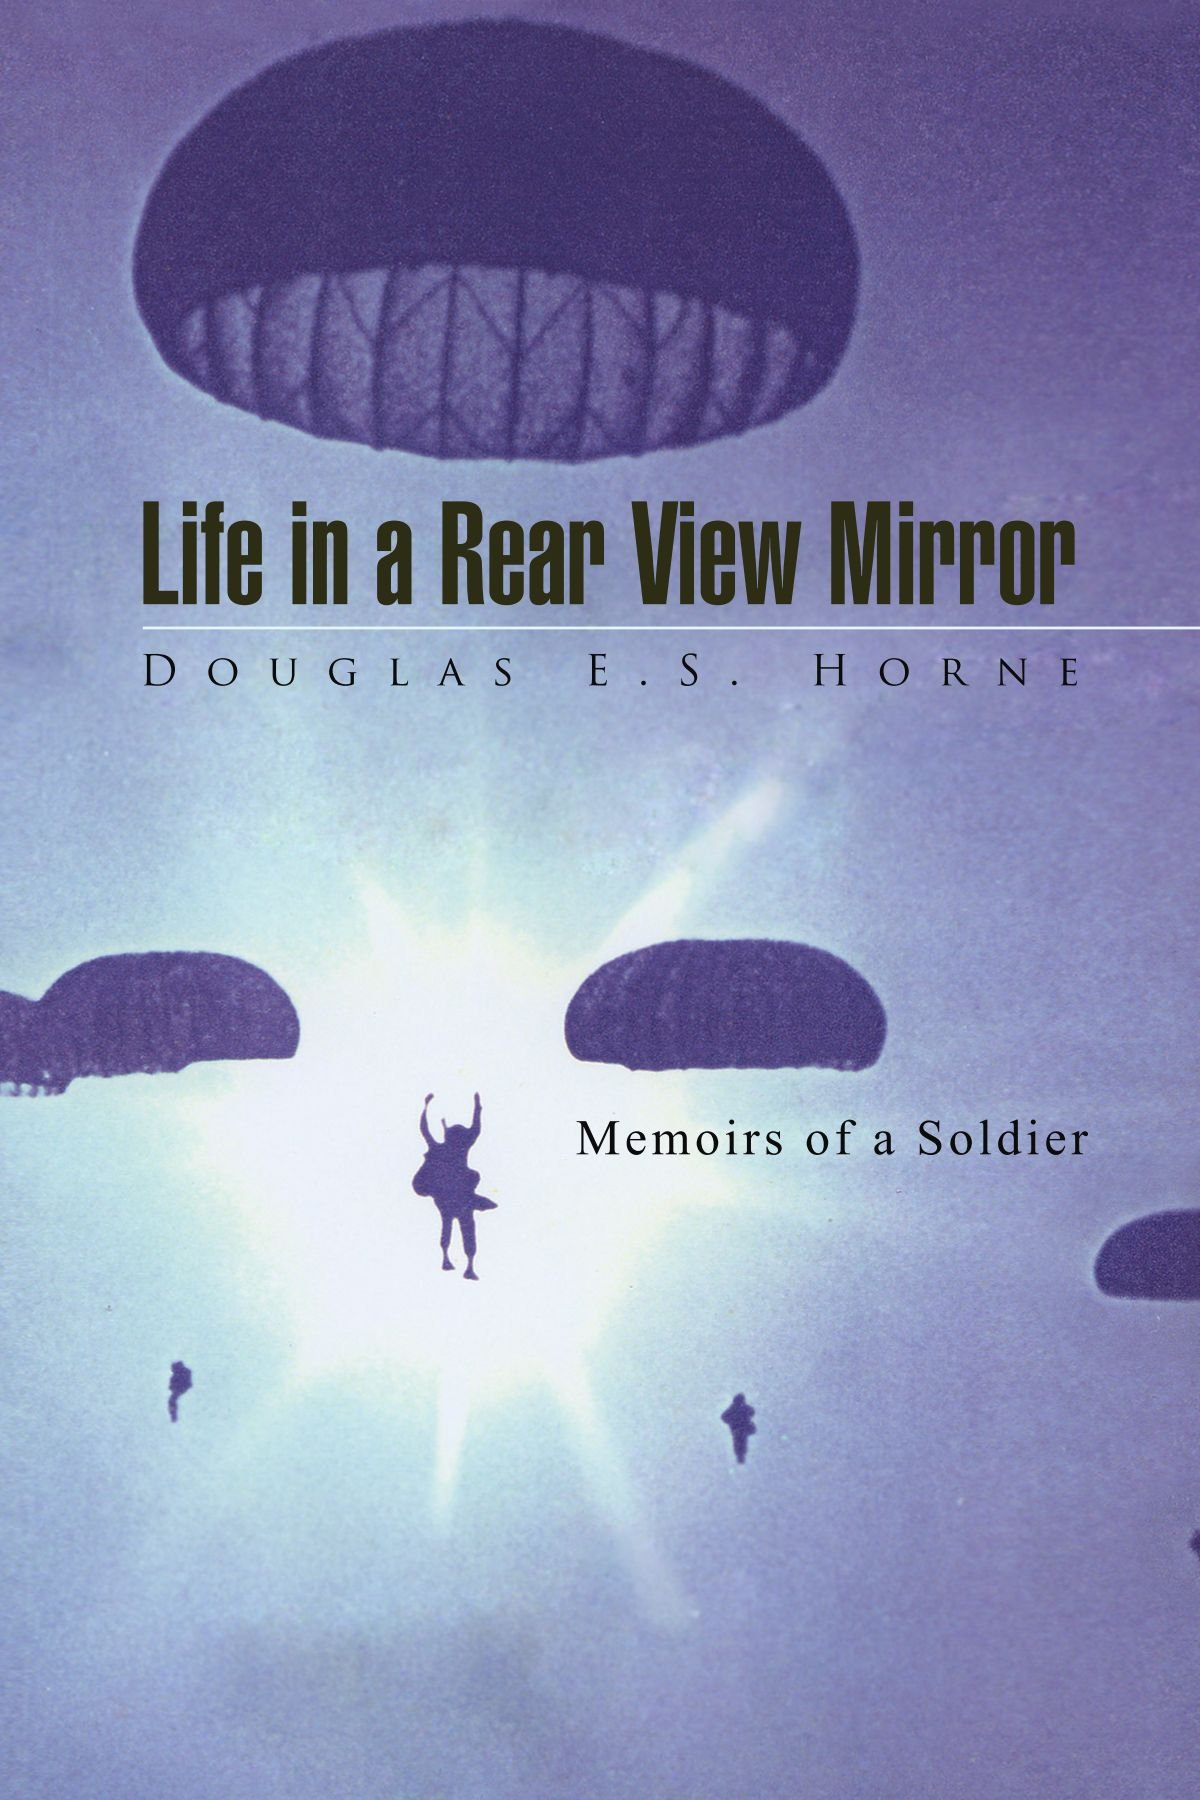 Life in a Rear View Mirror: Memoirs of a Soldier